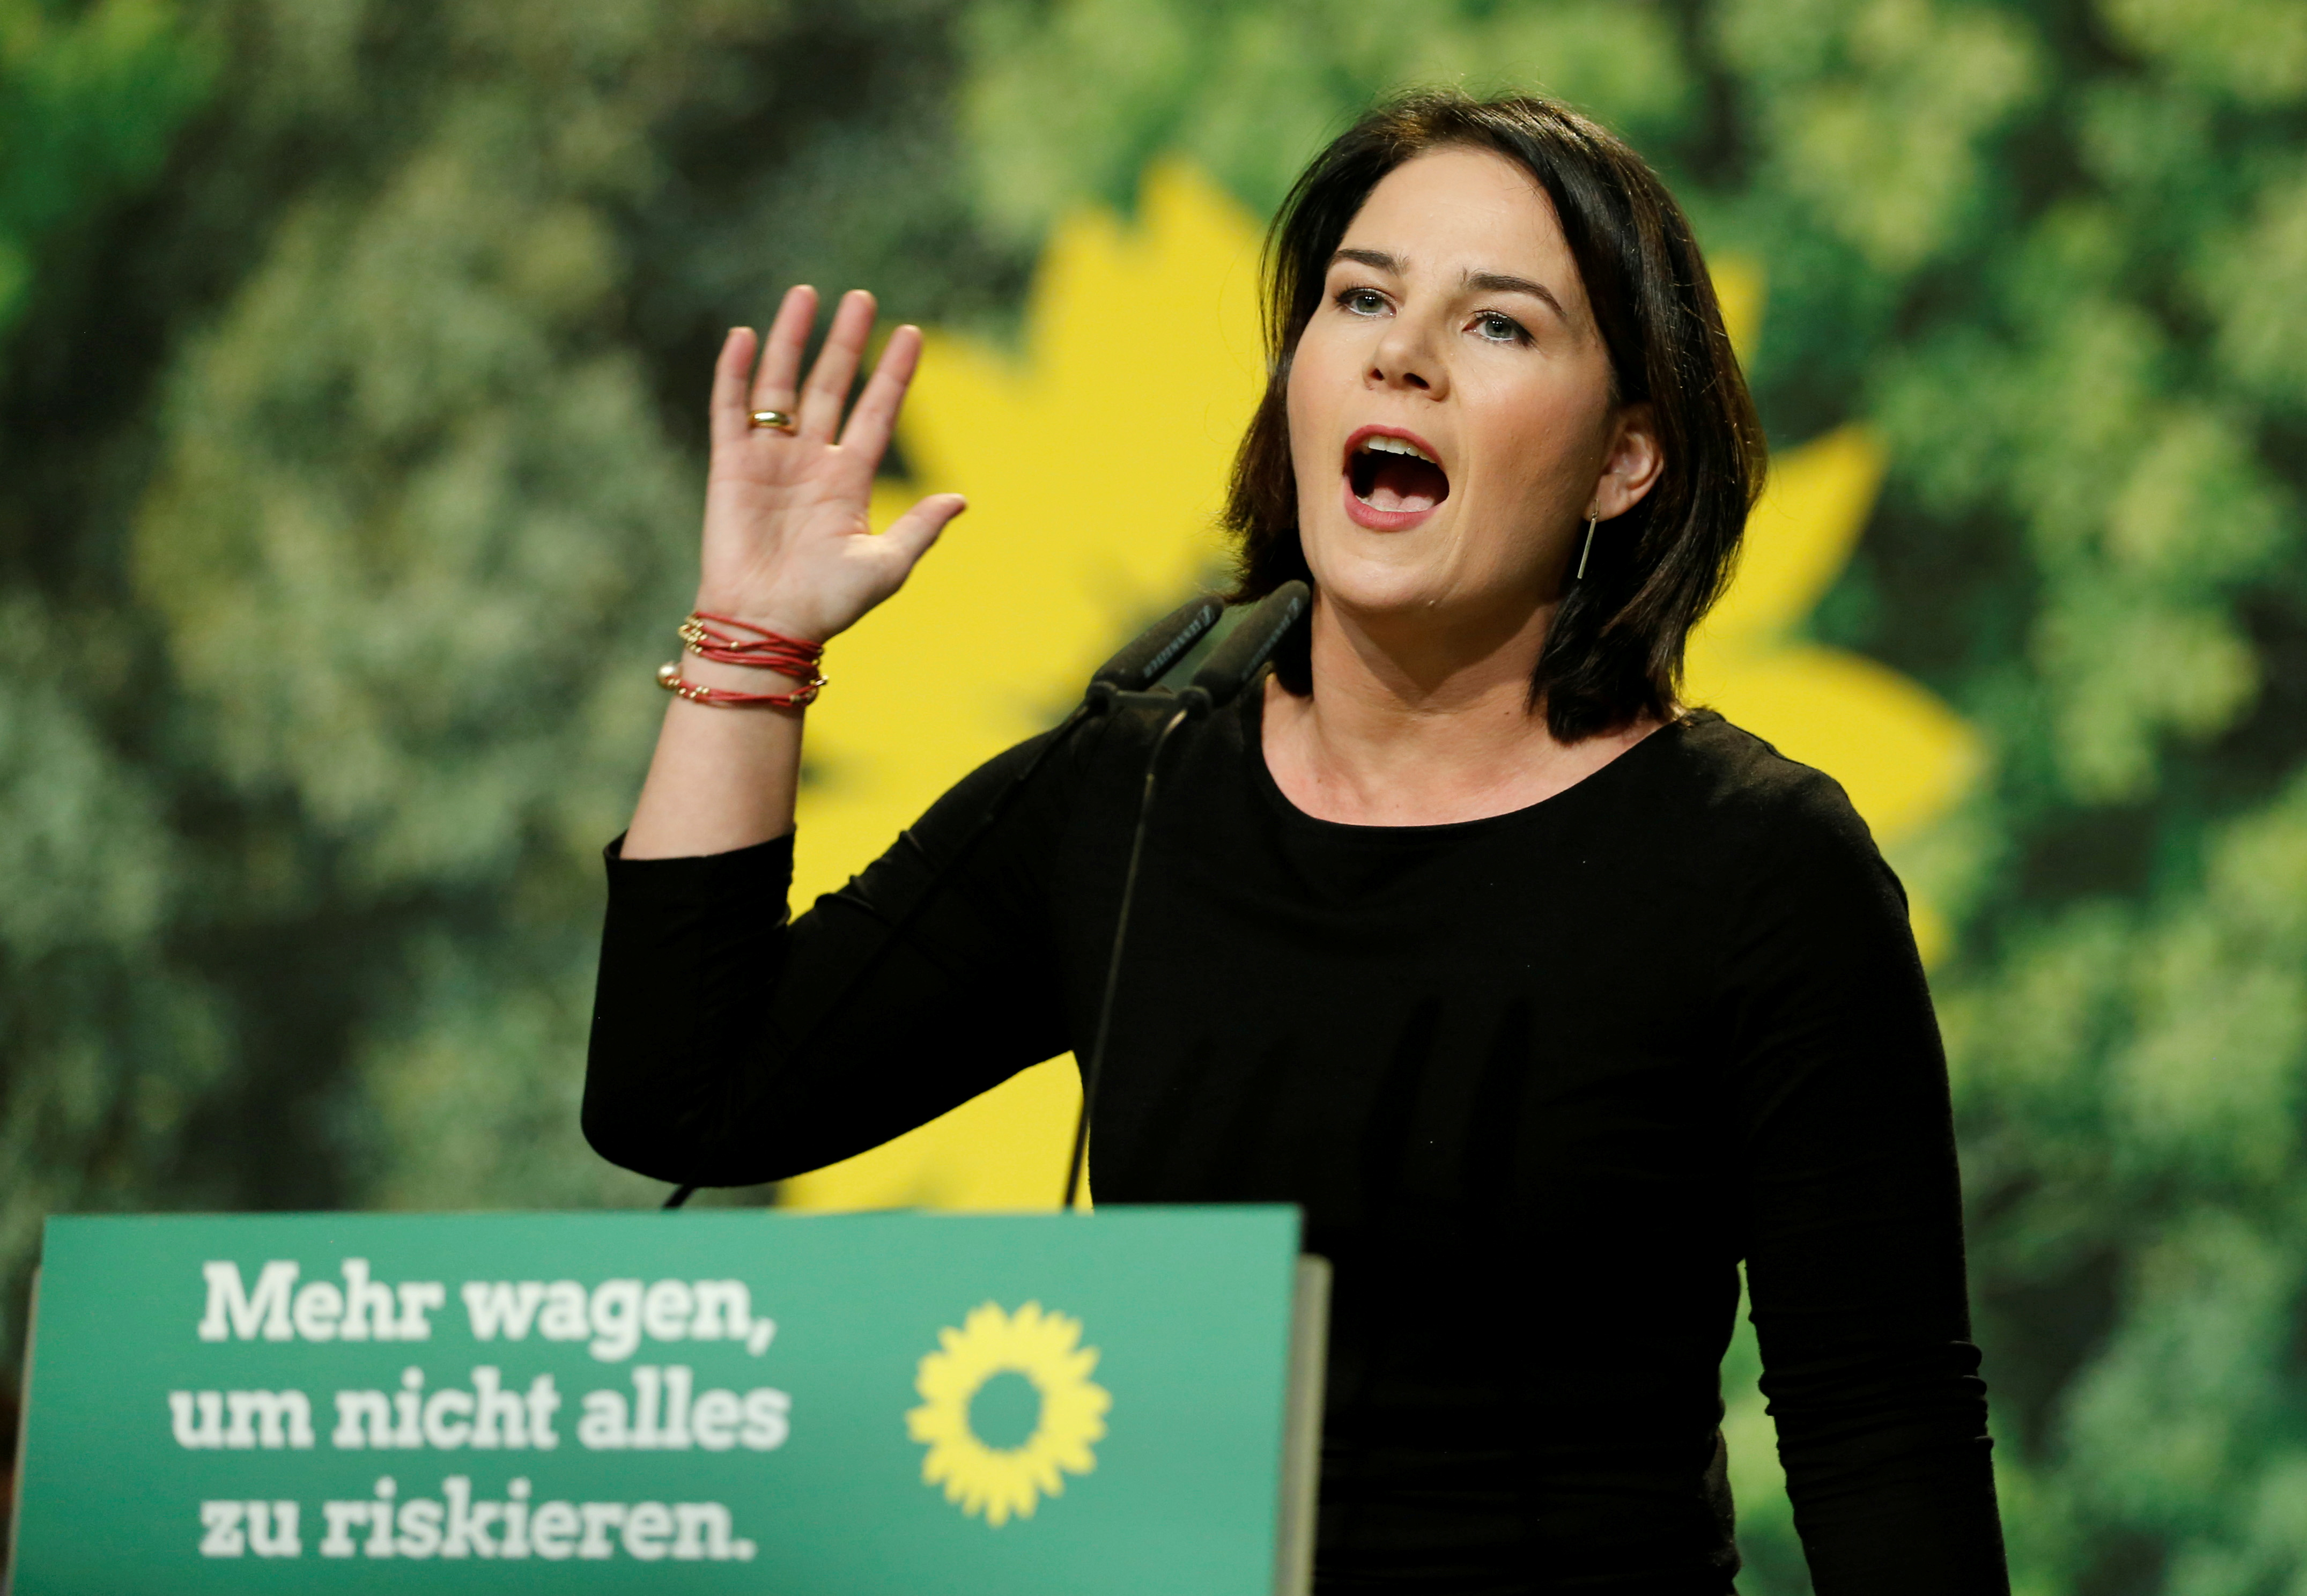 Leader of Germany's Green Party Annalena Baerbock is seen during the delegates' conference in Bielefeld, Germany November 16, 2019. REUTERS/Leon Kuegeler